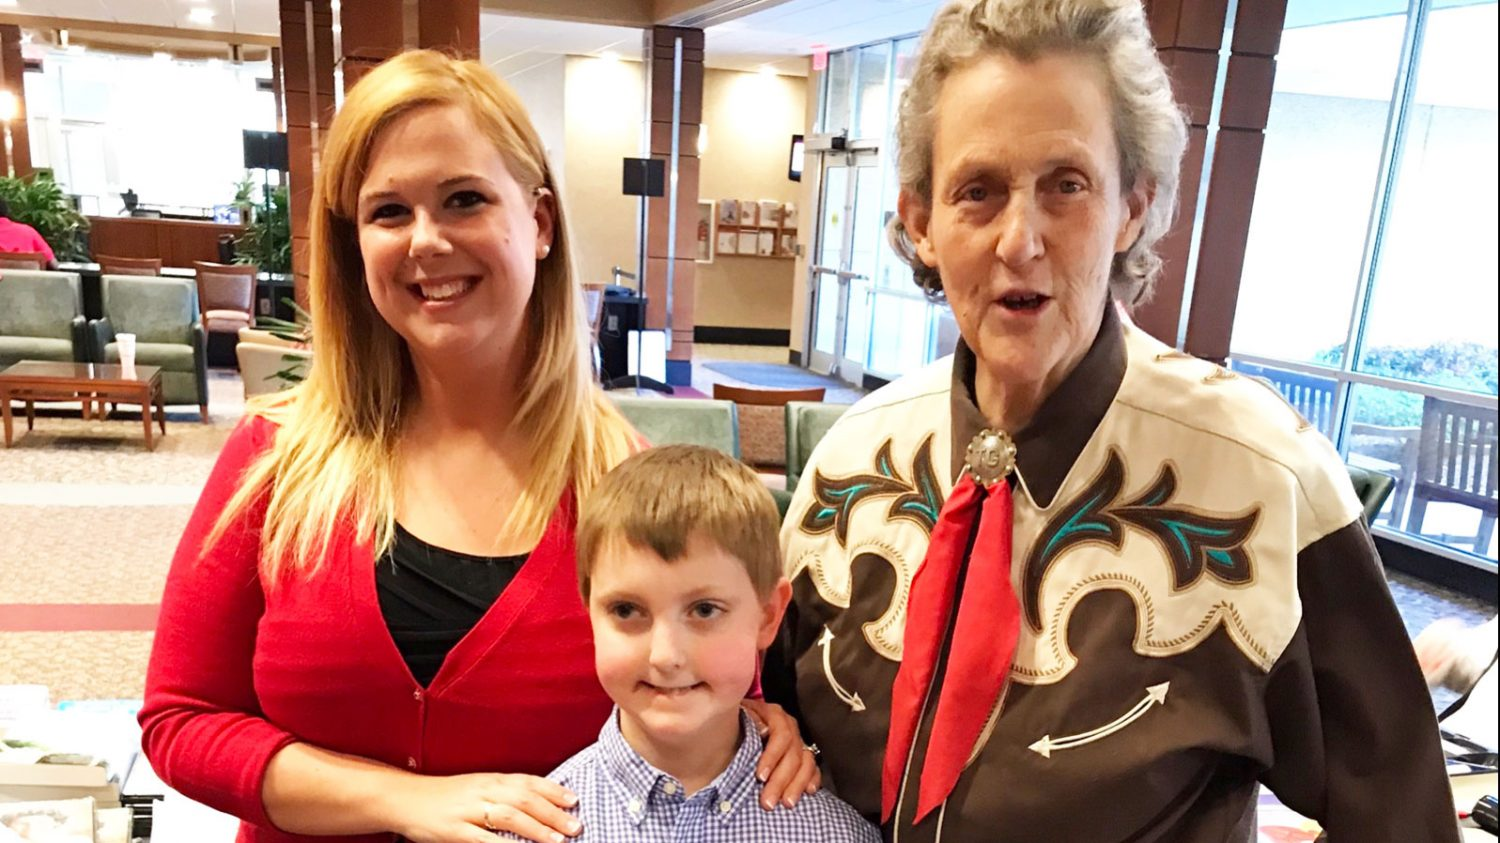 Danielle Pennington and her son Jacob with Temple Grandin.